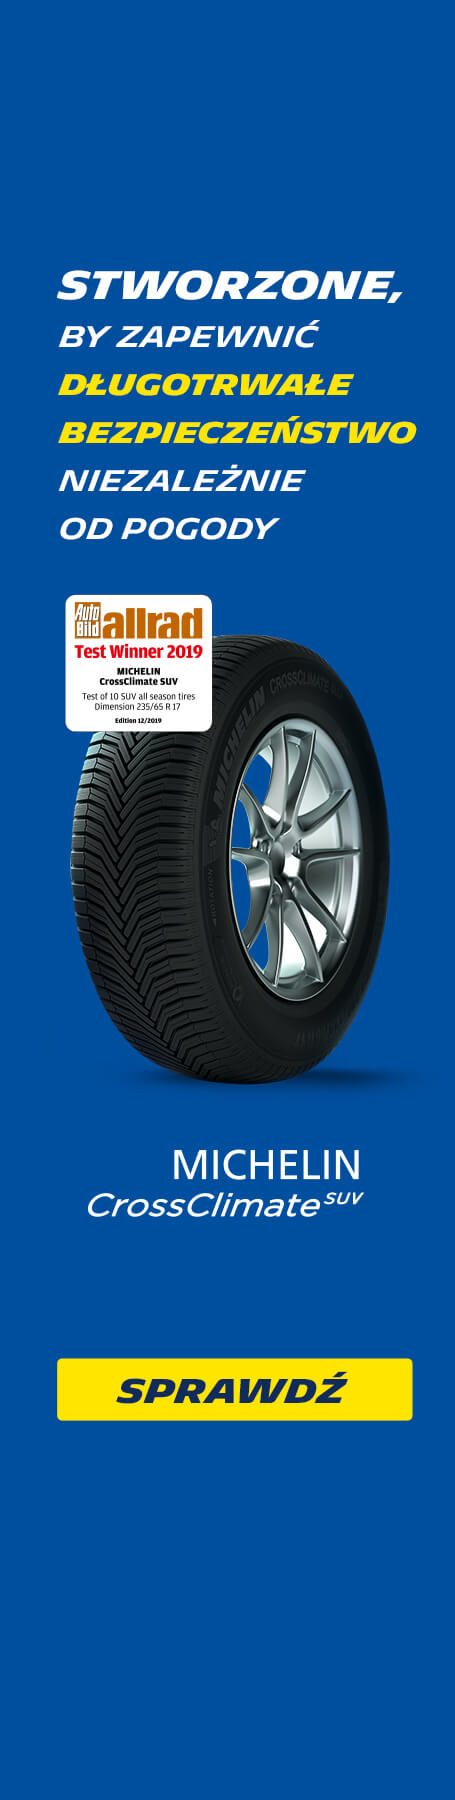 Michelin_lato_2020